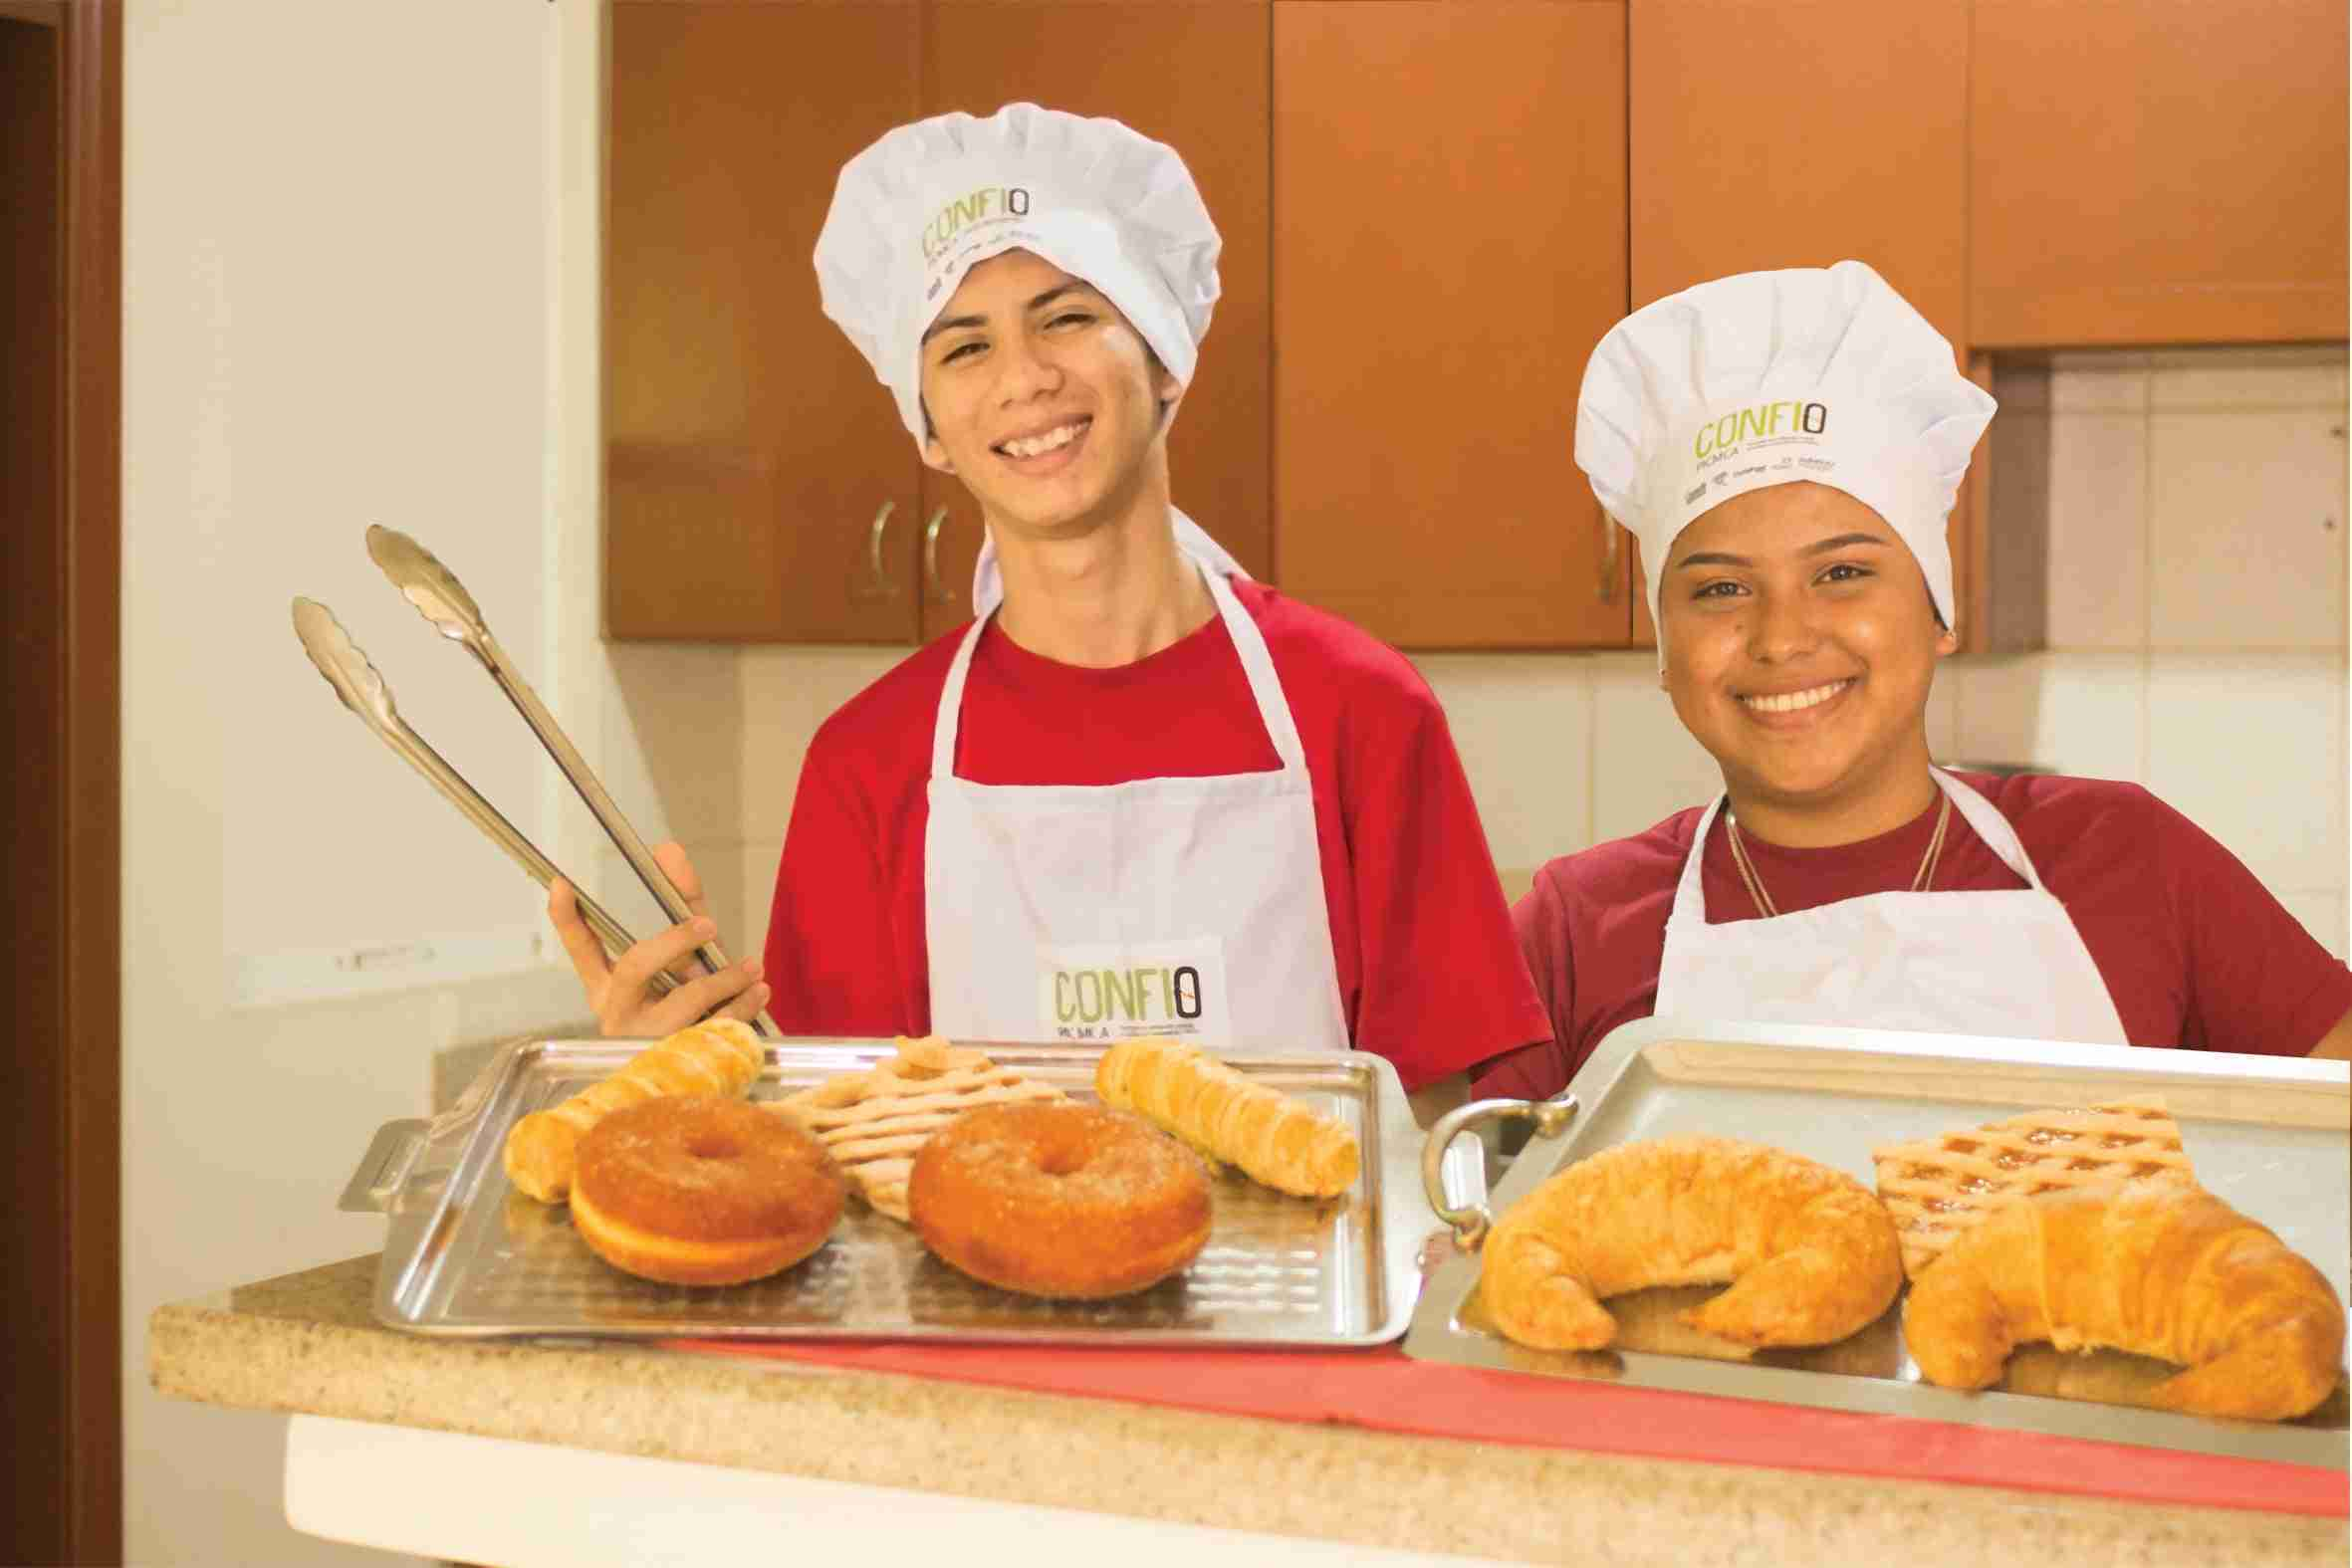 Teens show their baking in Nicaragua